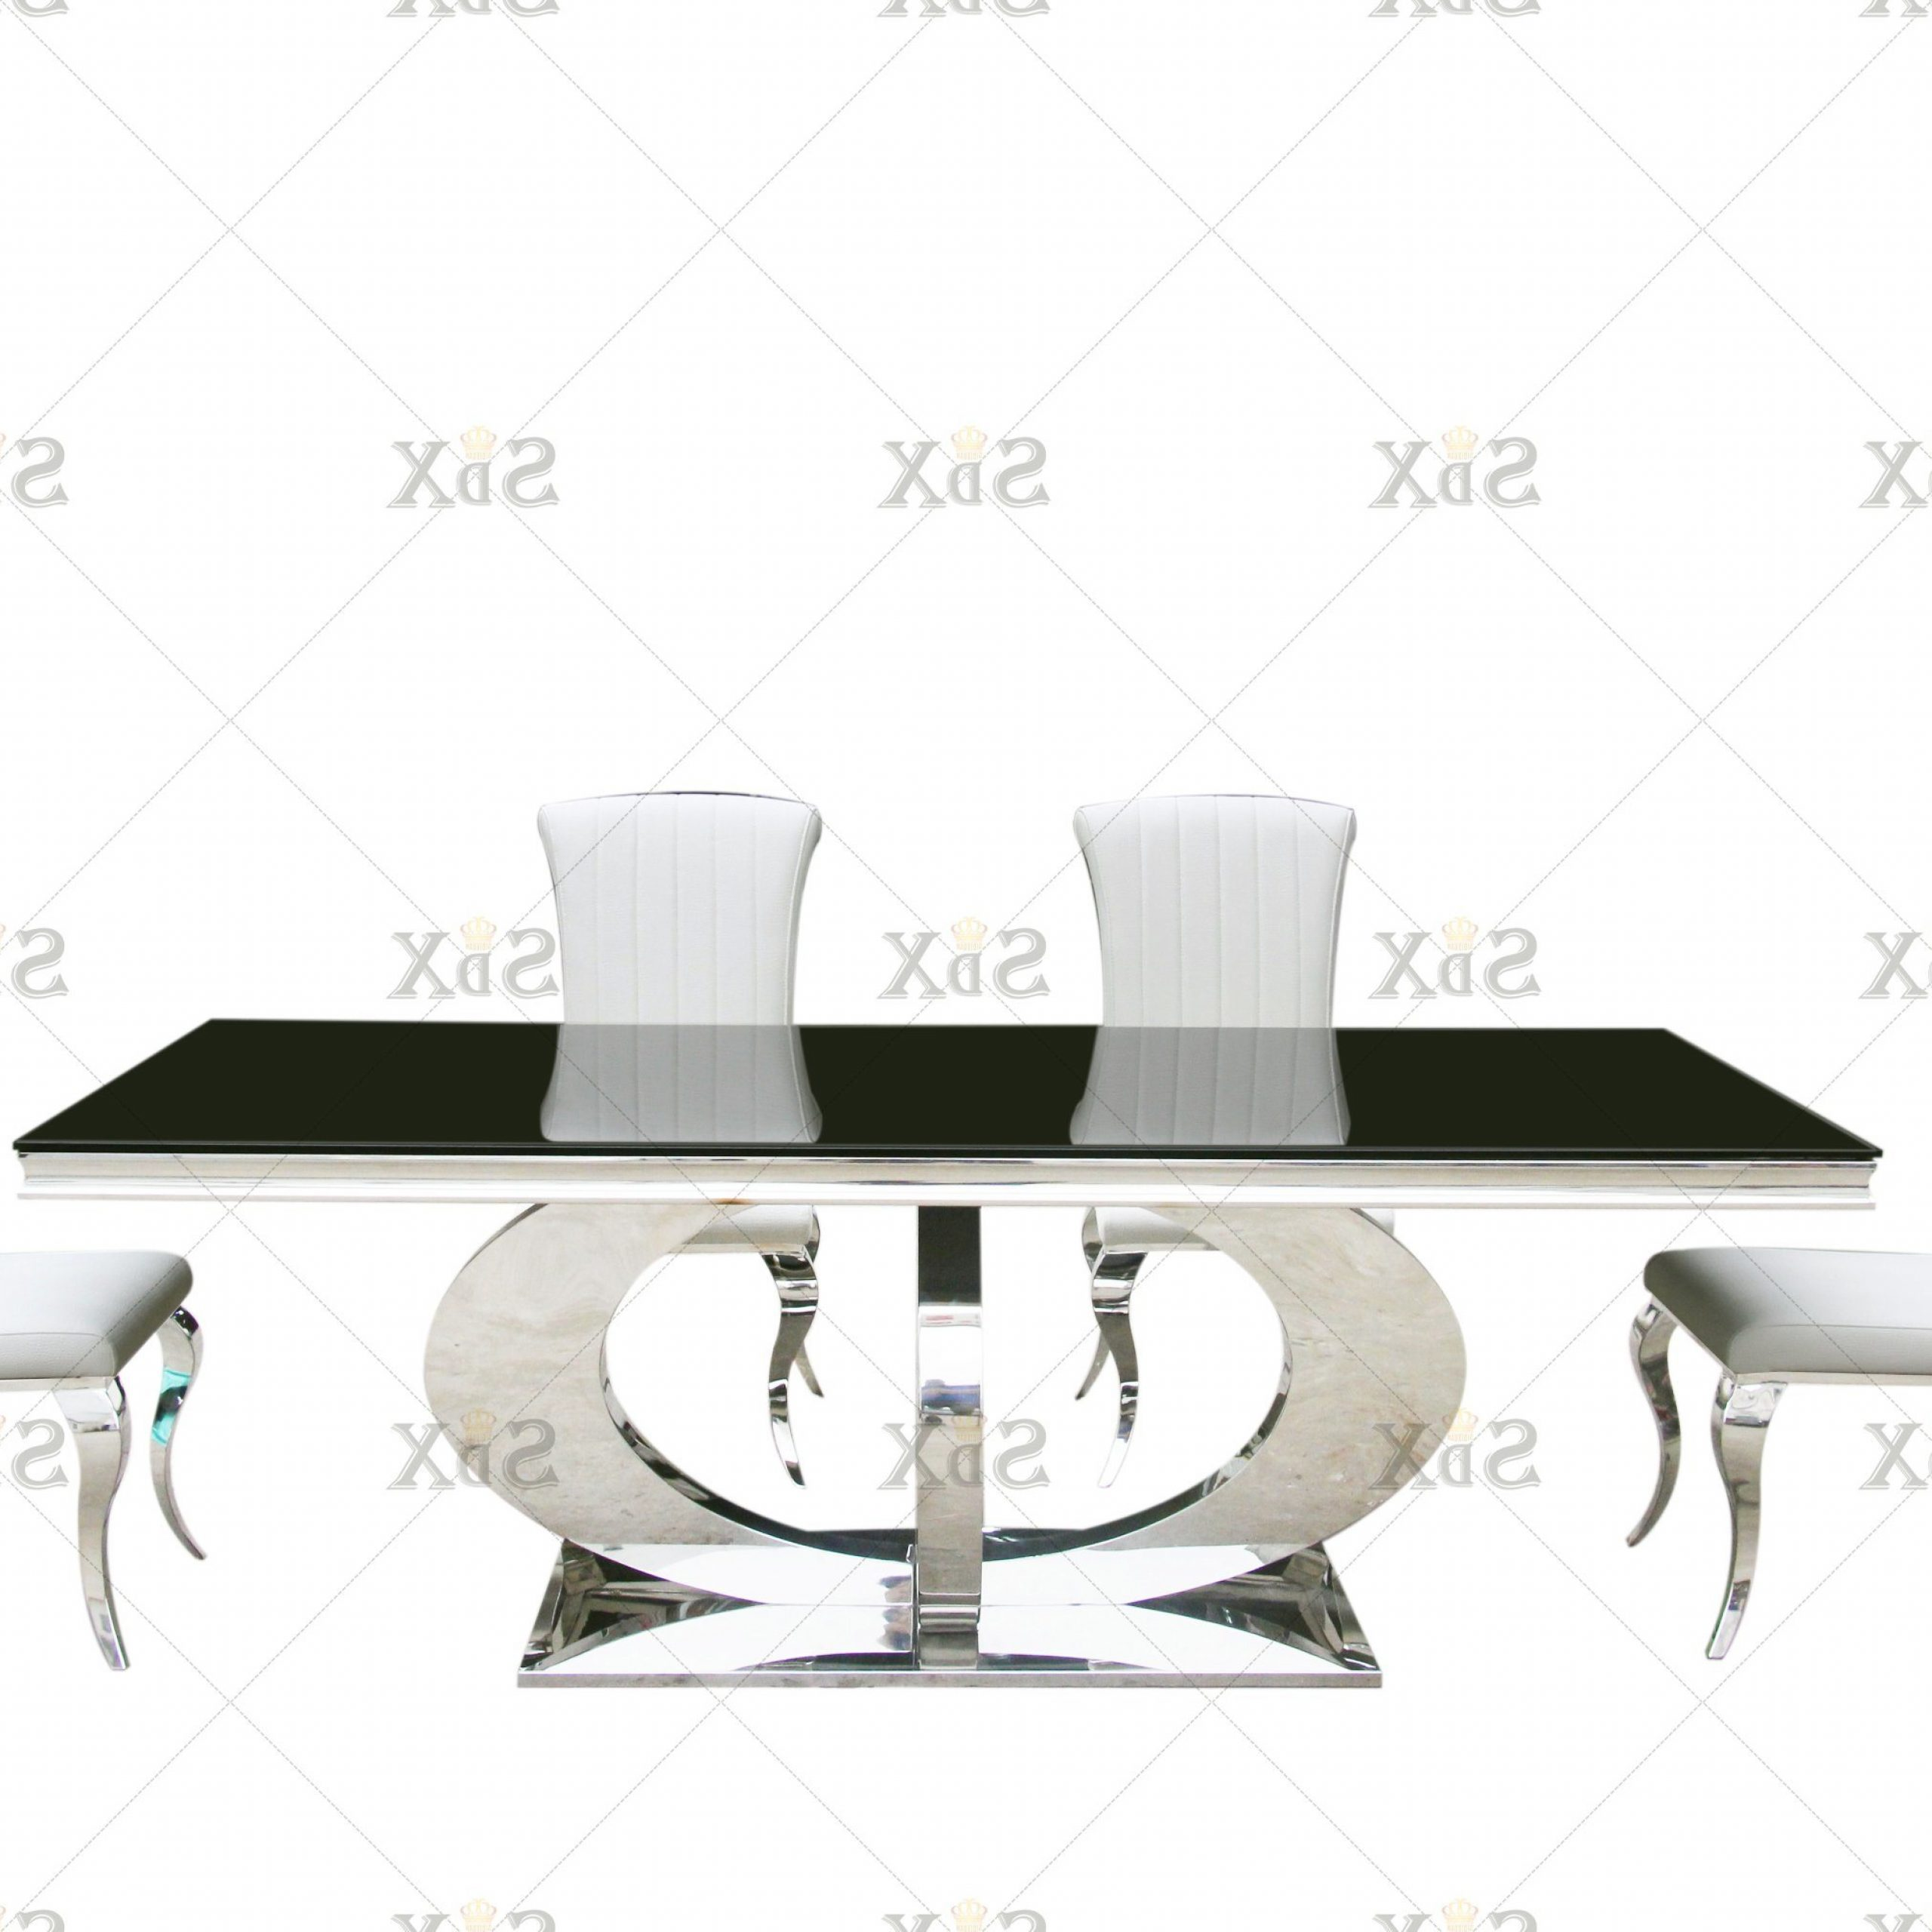 [%[Hot Item] Classic Black And White Polished Steel Base And Black Tempered  Glass Top With 6 Dining Chair Orion Dining Table Set In Trendy Long Dining Tables With Polished Black Stainless Steel Base|Long Dining Tables With Polished Black Stainless Steel Base Regarding Preferred [Hot Item] Classic Black And White Polished Steel Base And Black Tempered  Glass Top With 6 Dining Chair Orion Dining Table Set|Famous Long Dining Tables With Polished Black Stainless Steel Base With [Hot Item] Classic Black And White Polished Steel Base And Black Tempered  Glass Top With 6 Dining Chair Orion Dining Table Set|Trendy [Hot Item] Classic Black And White Polished Steel Base And Black Tempered  Glass Top With 6 Dining Chair Orion Dining Table Set Inside Long Dining Tables With Polished Black Stainless Steel Base%] (View 7 of 25)